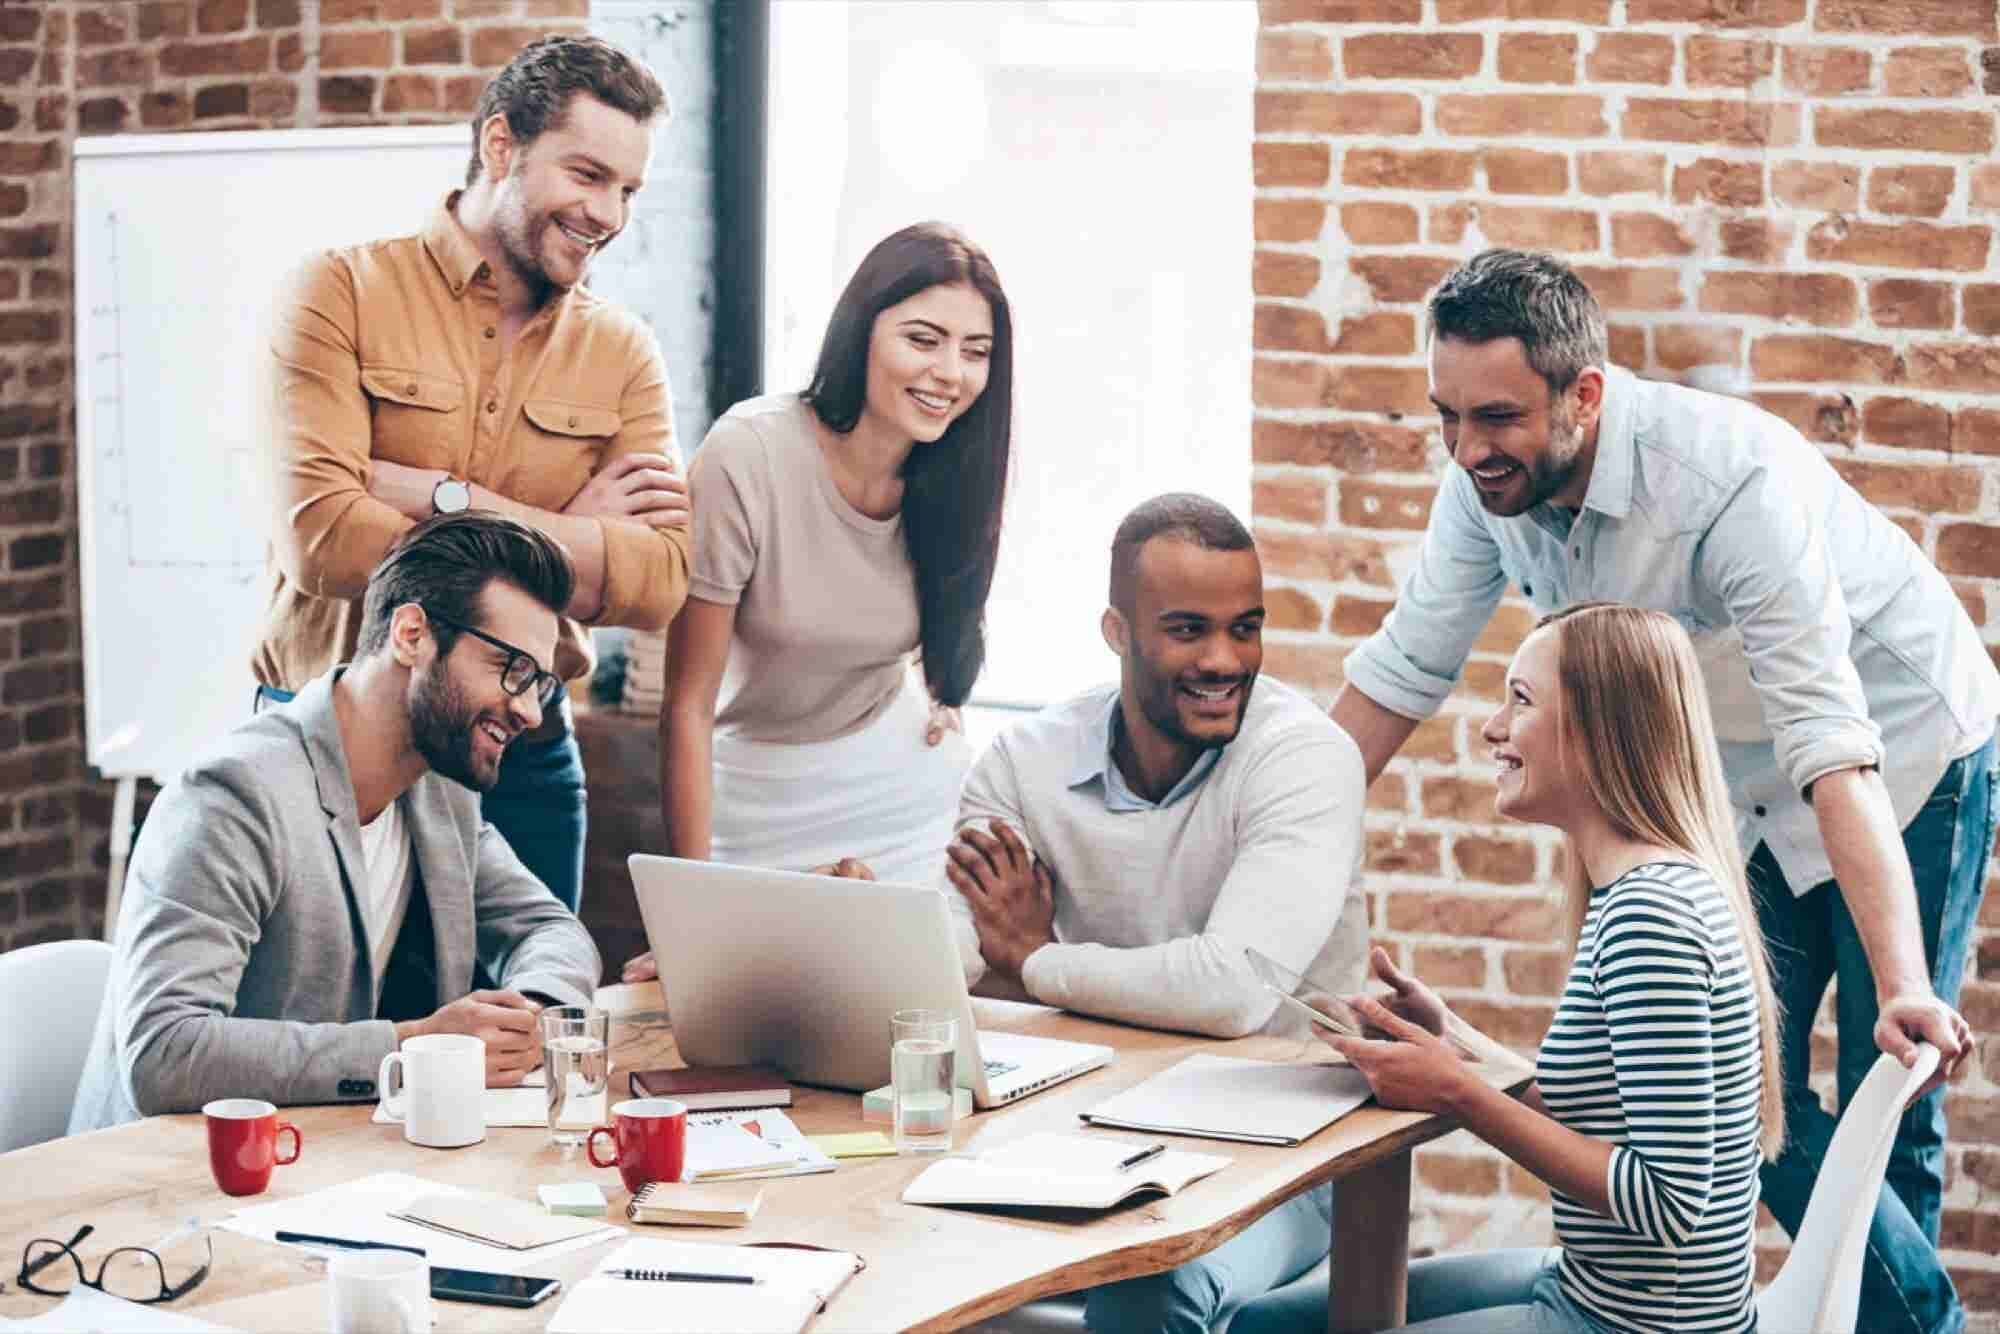 Factors Damaging Employee Relations, As Defined by Industry Experts